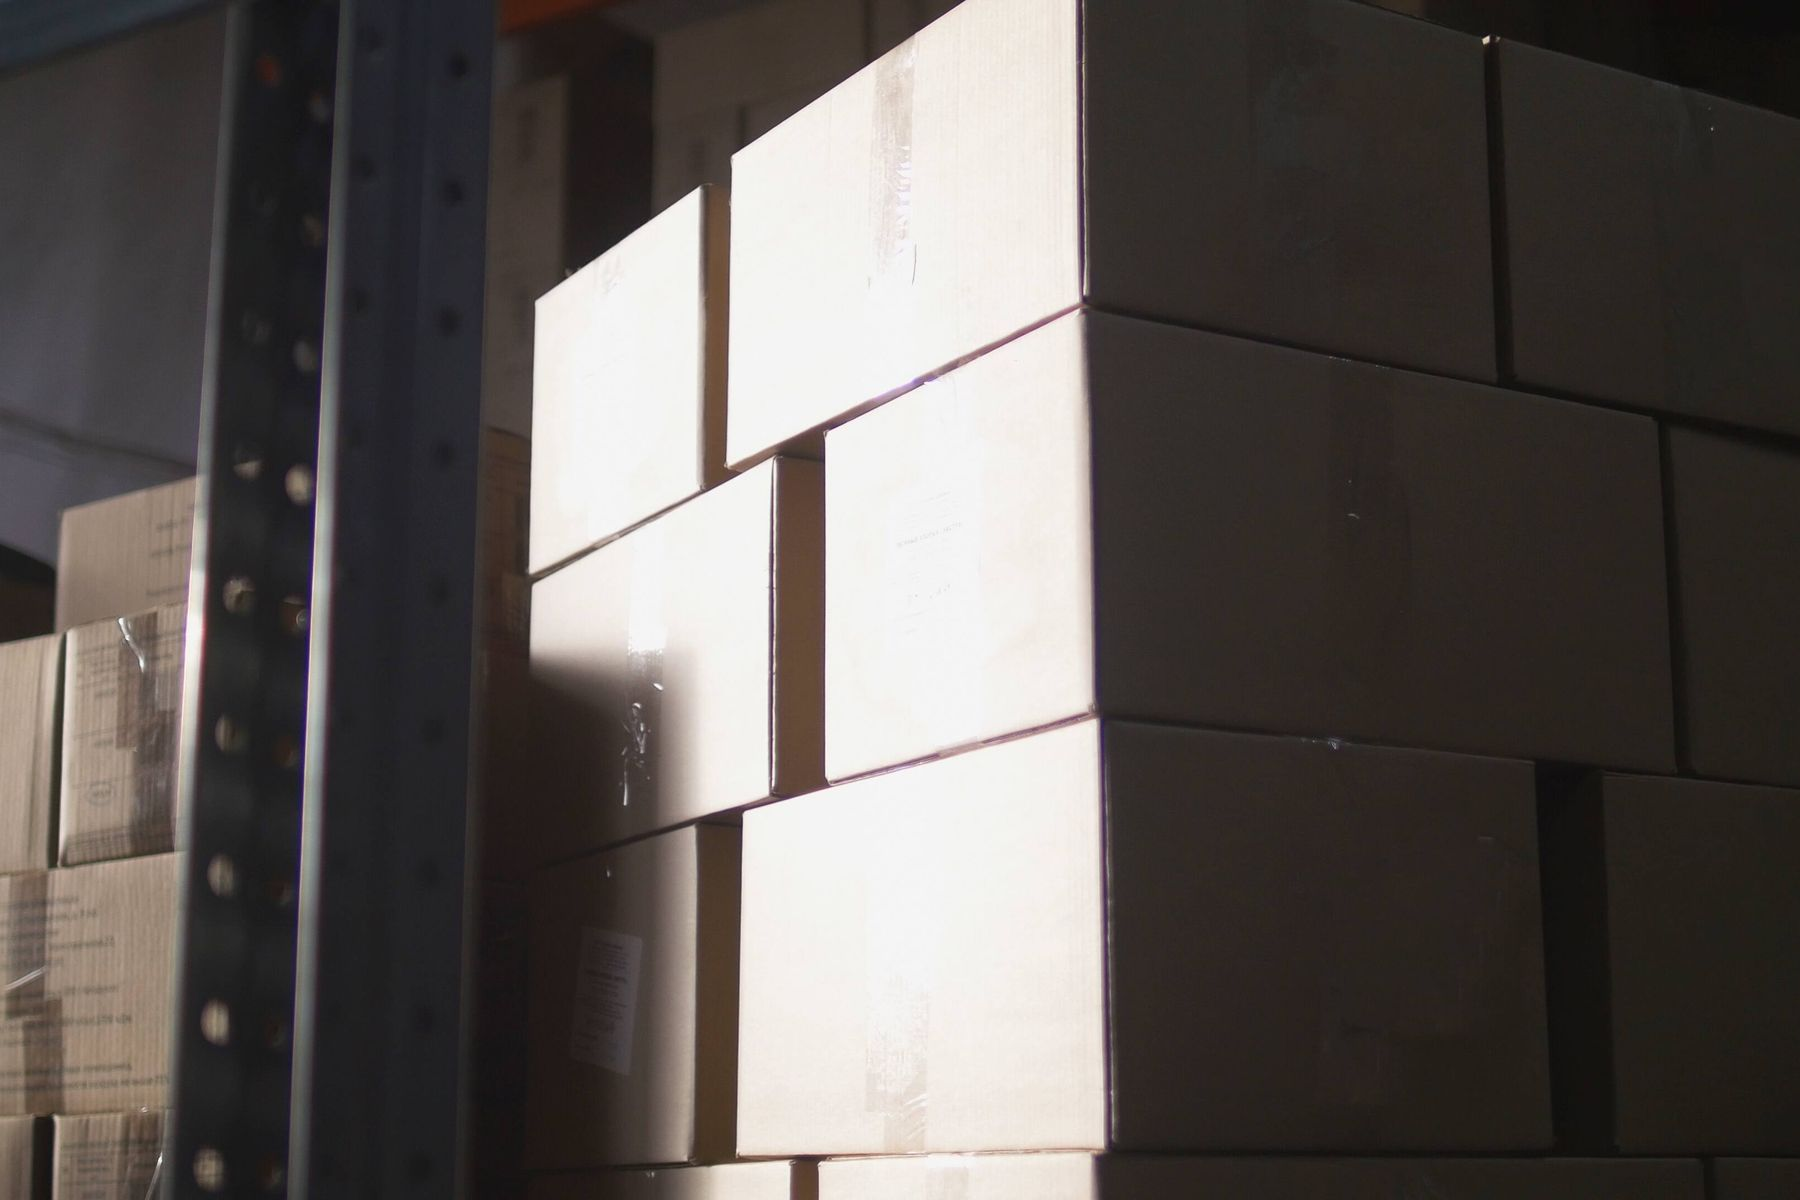 How to Clean Cardboard Box Stains from Your Storage Space | Get Set Clean